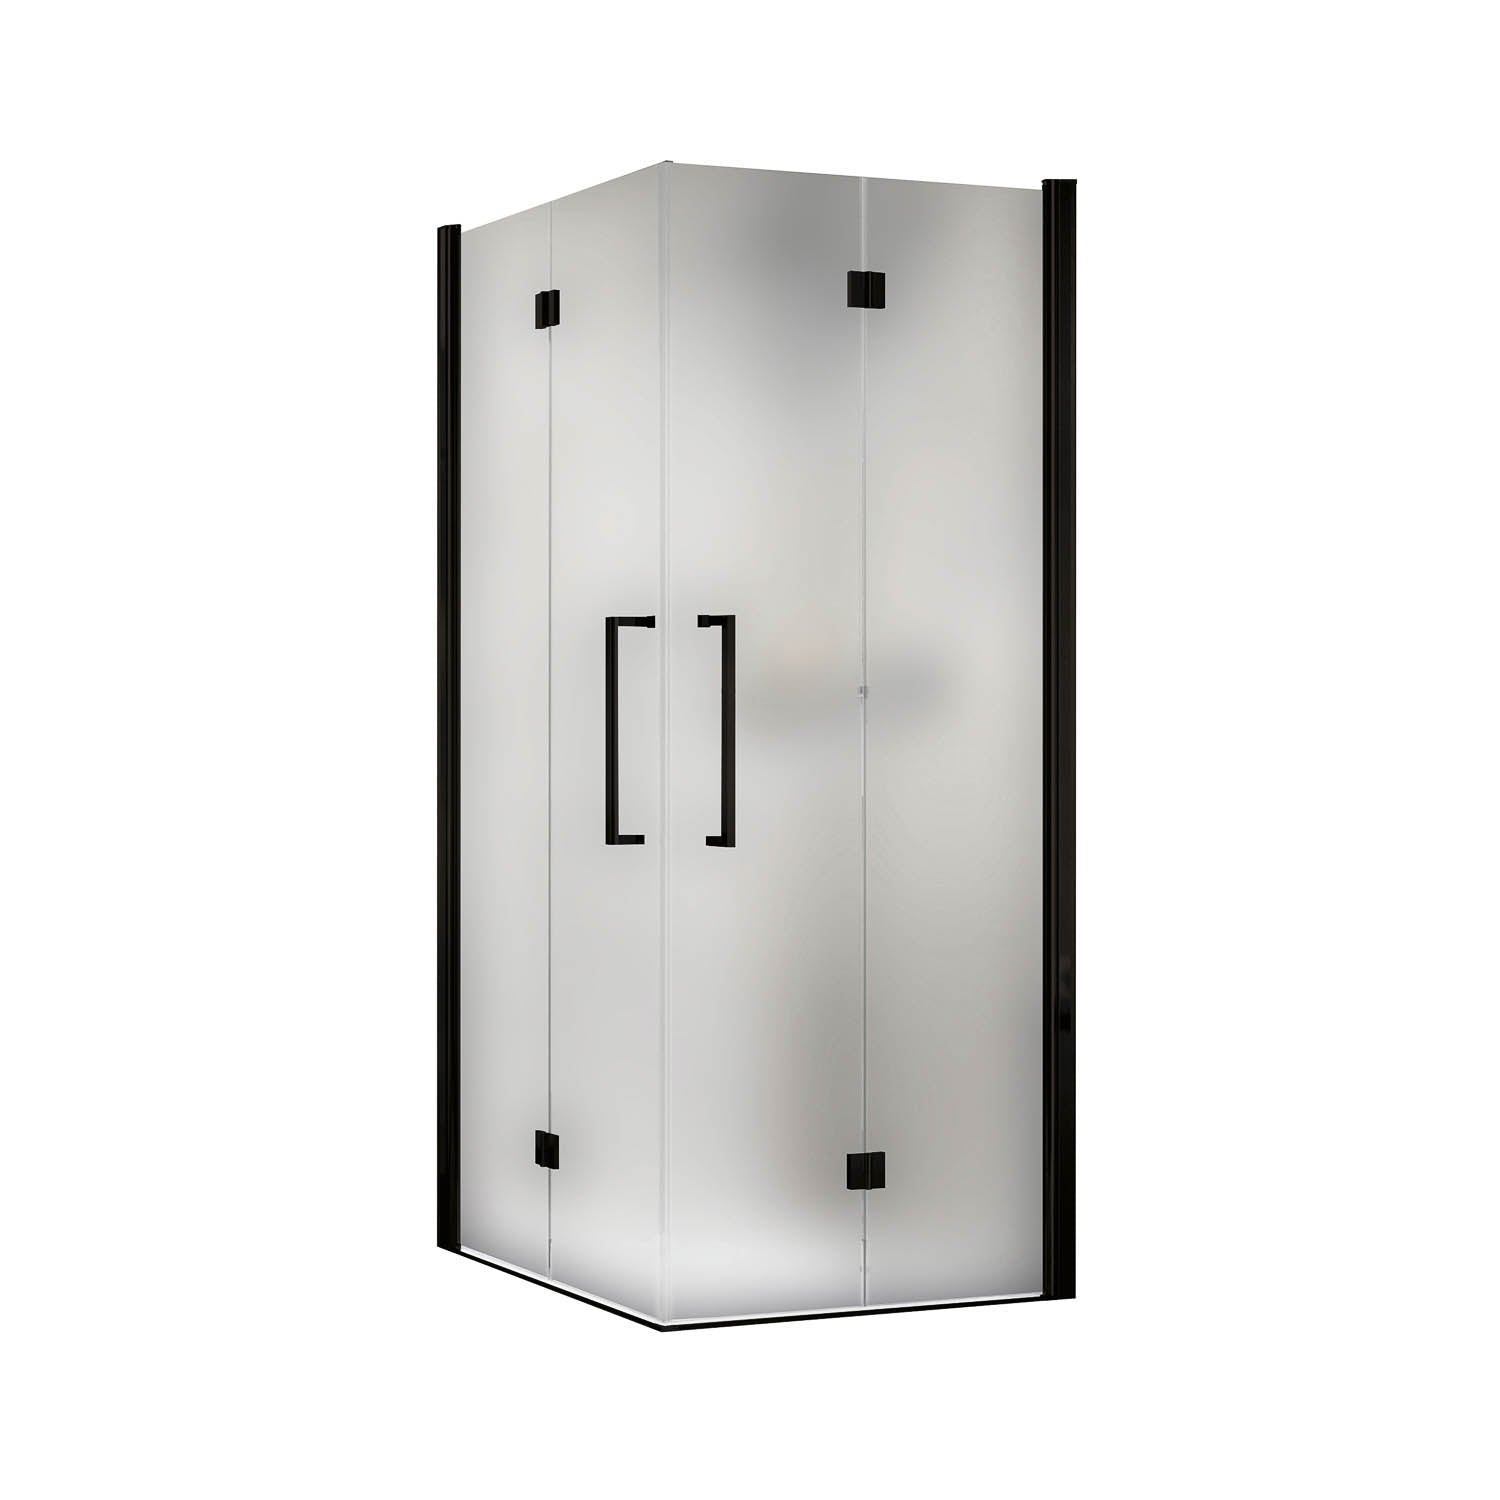 690-710mm Bliss Bi-folding Screen Frosted Glass with a matt black finish on a white background